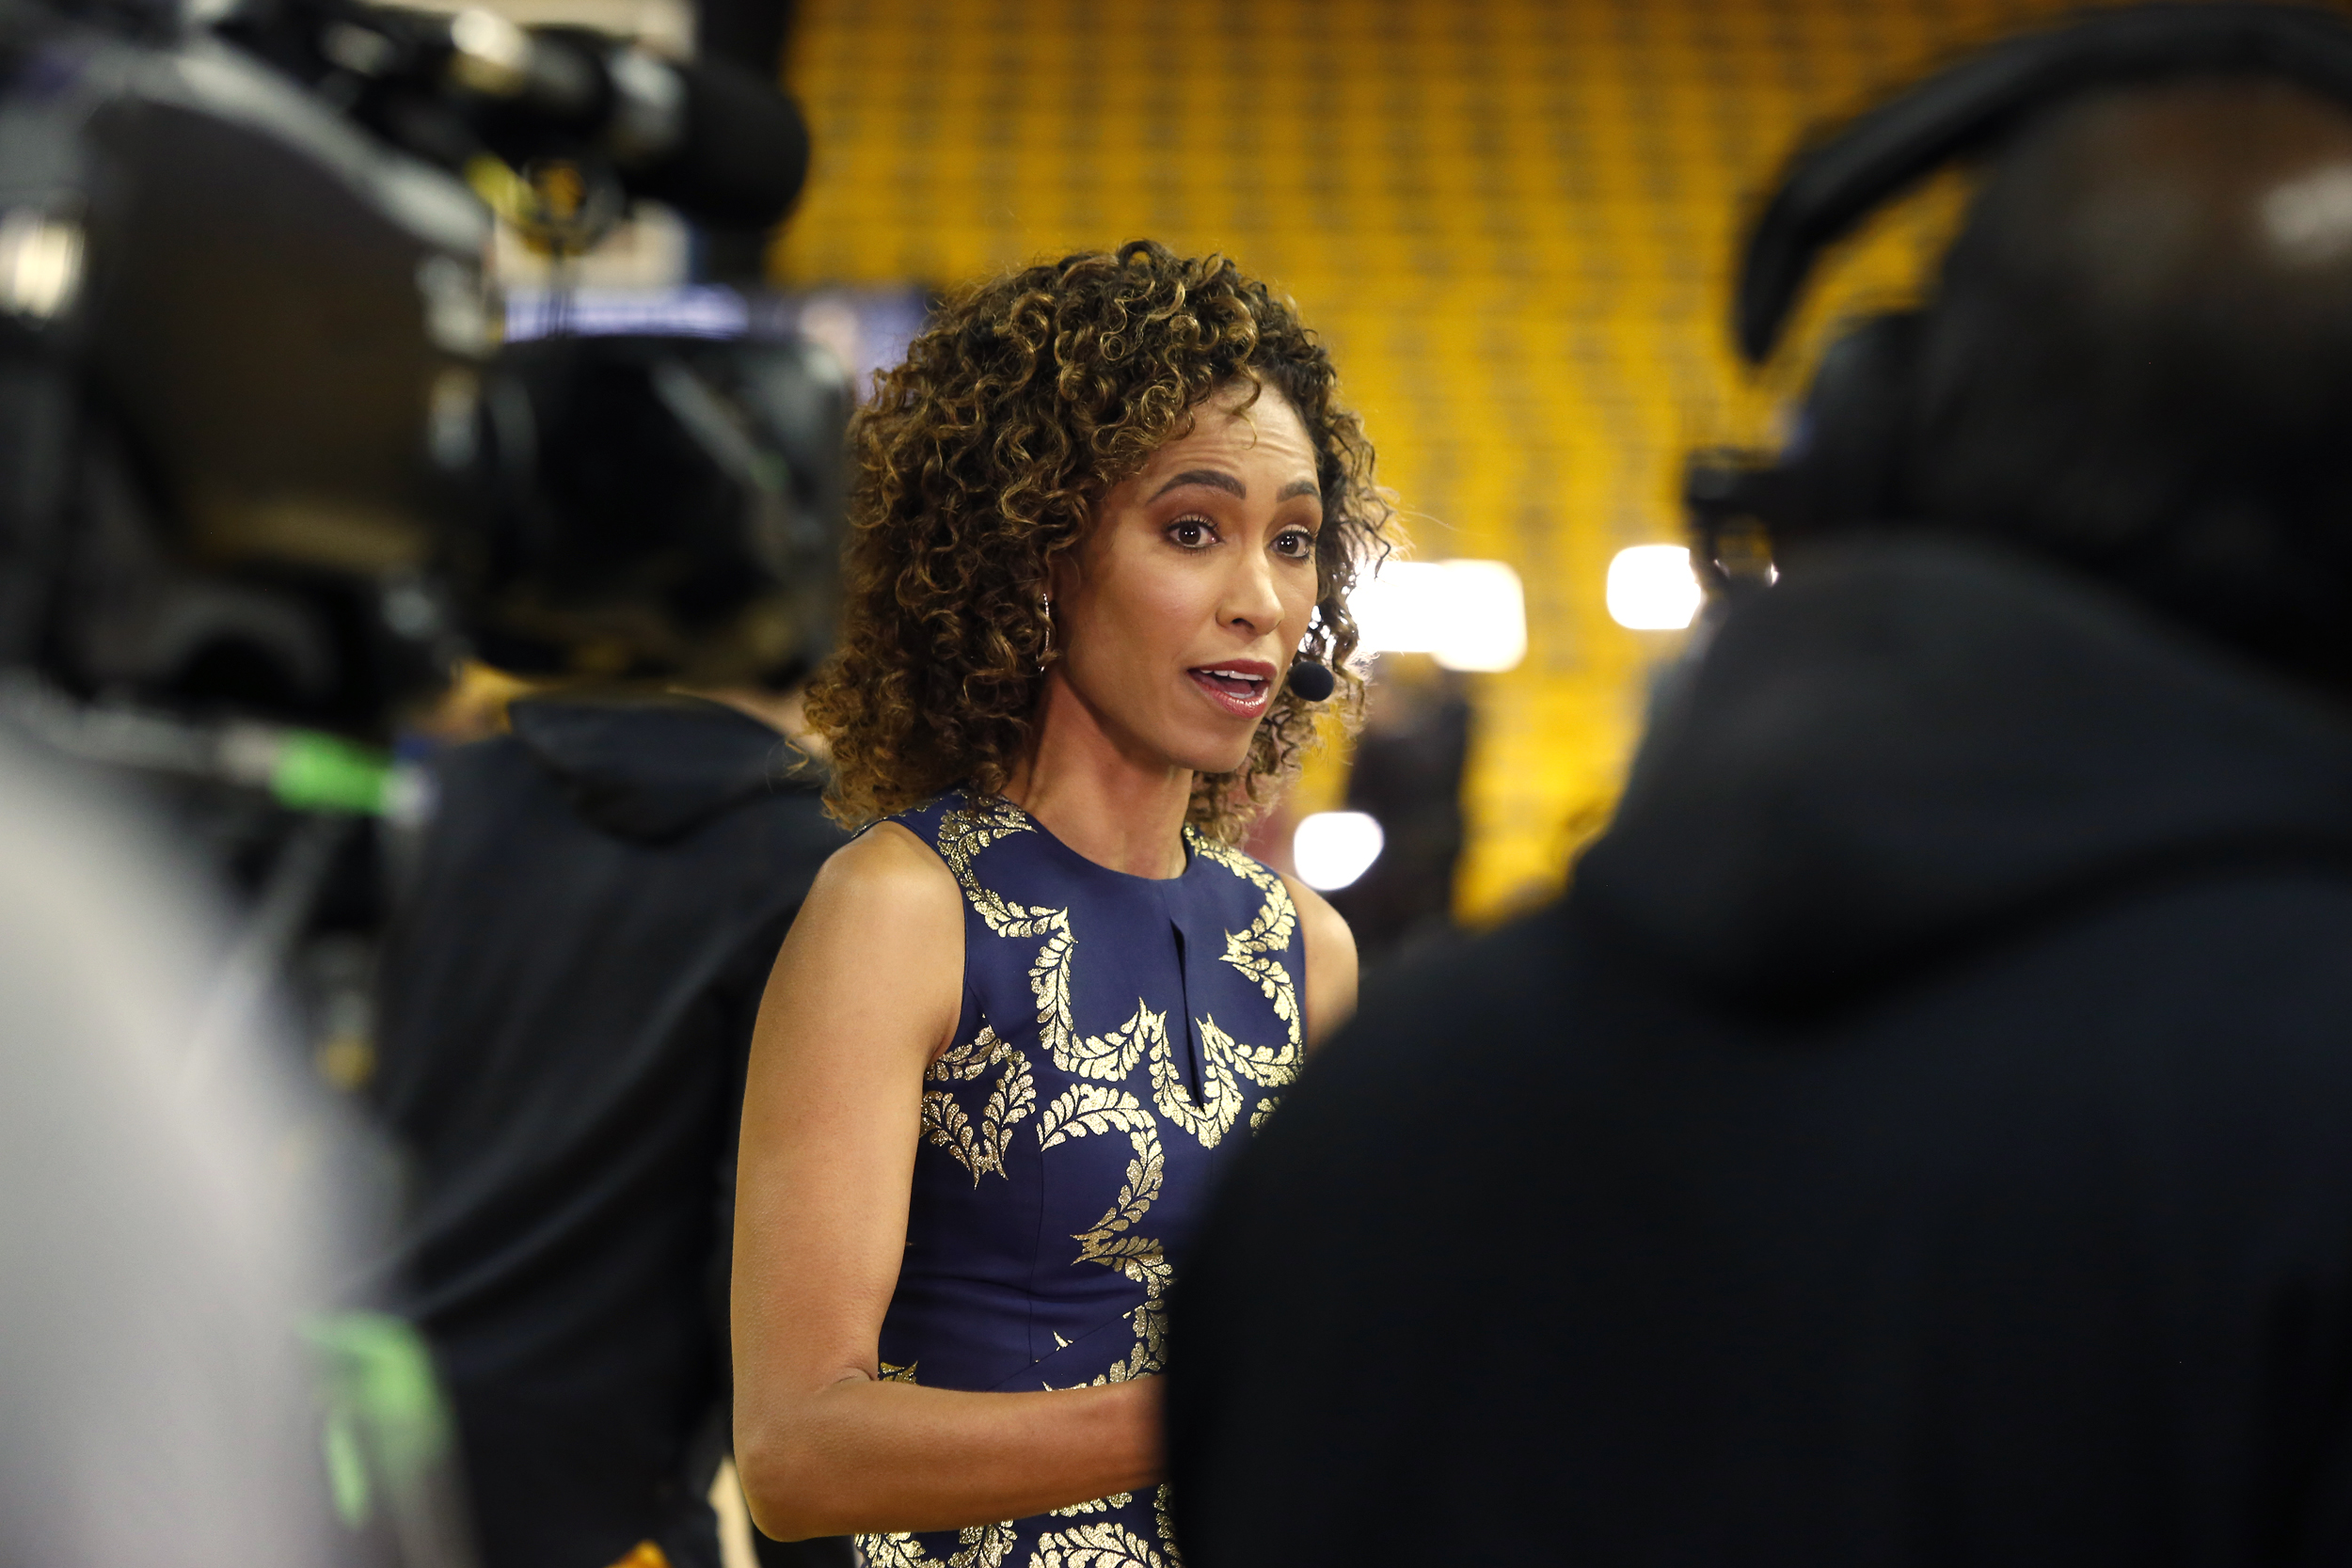 Sage Steele says she didn't want to get Covid vaccine, calls ESPN's mandate 'sick'